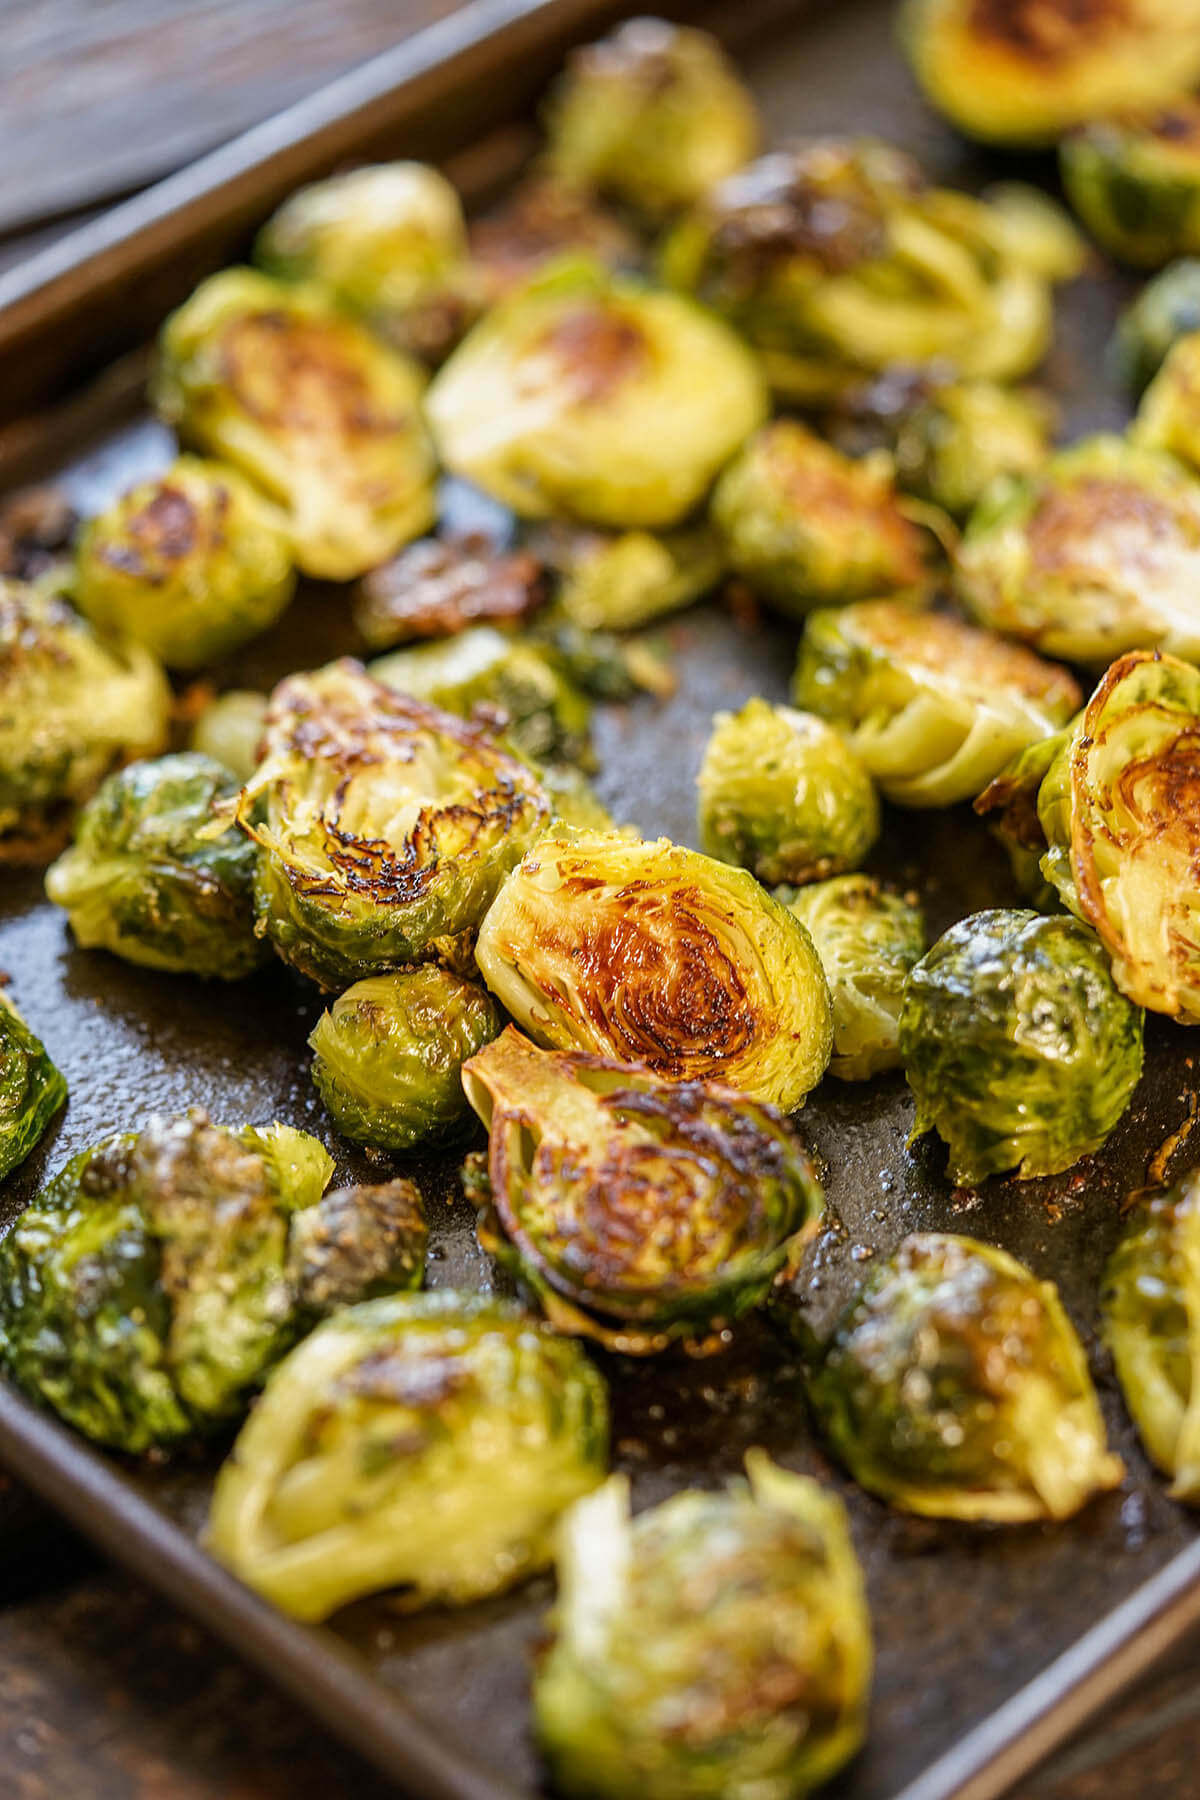 Oven Roasted Brussels sprouts on sheet pan.